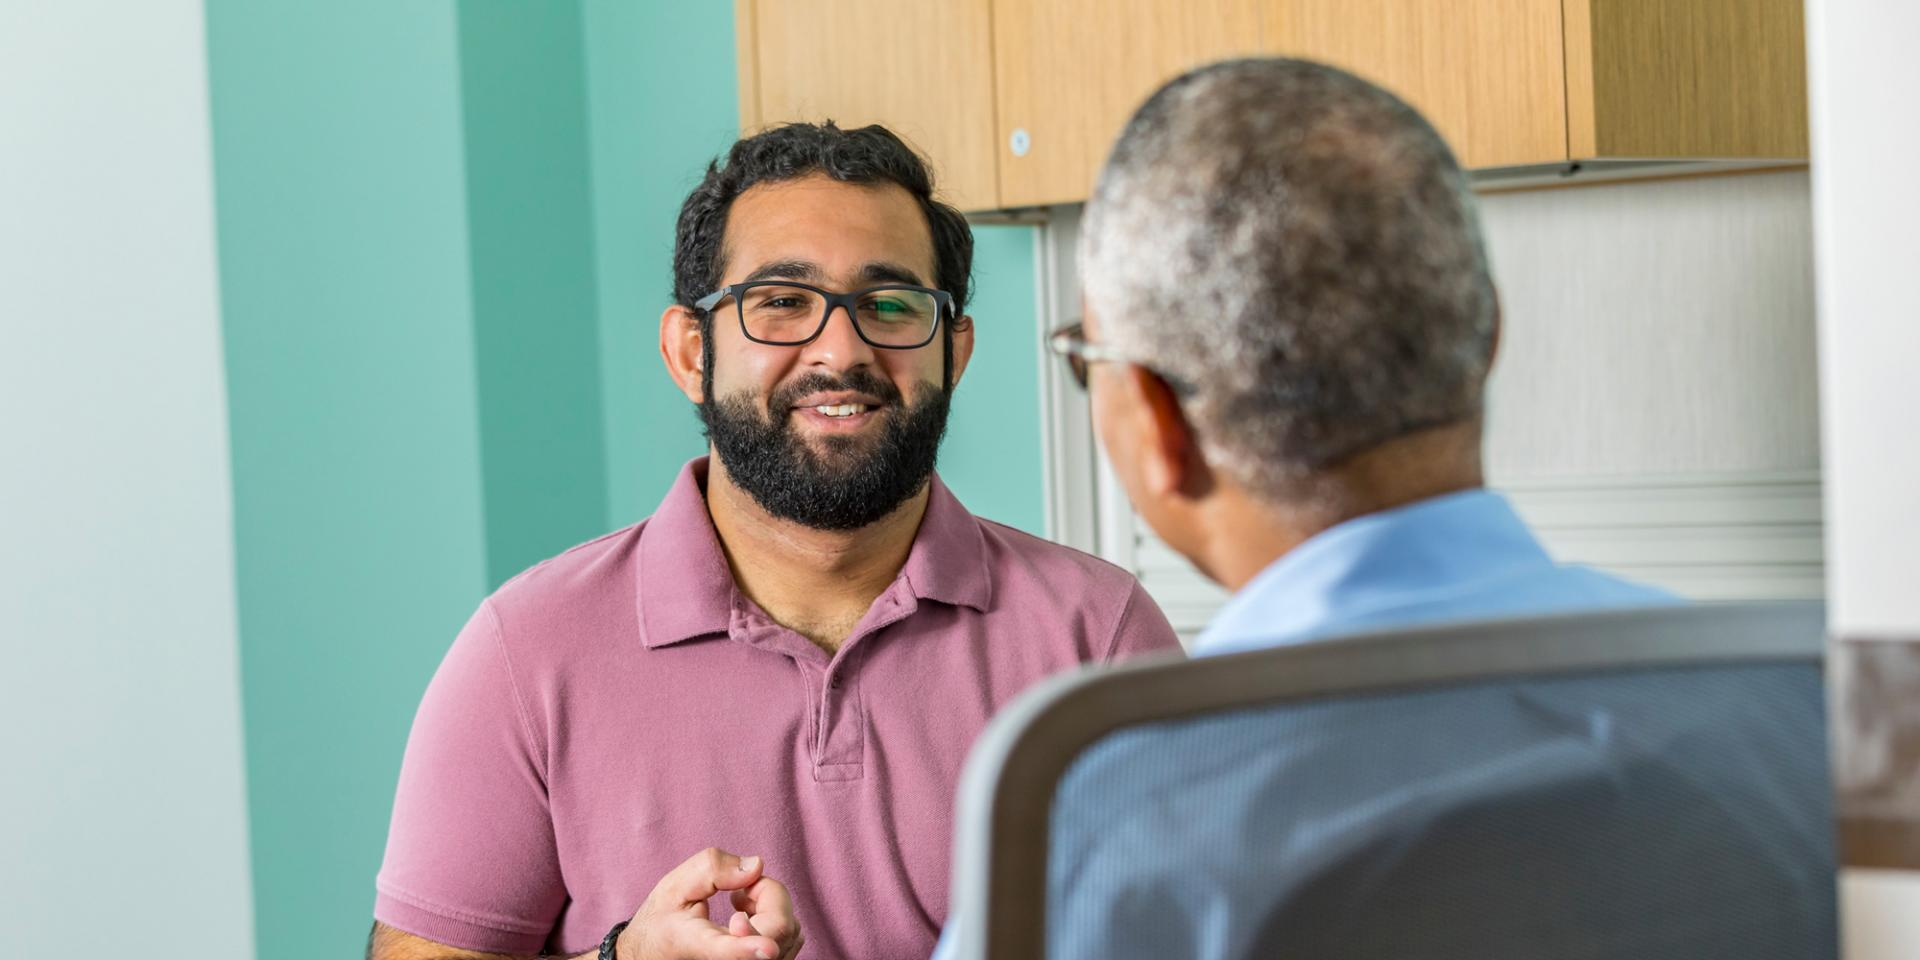 A counselor and patient talk at therapy